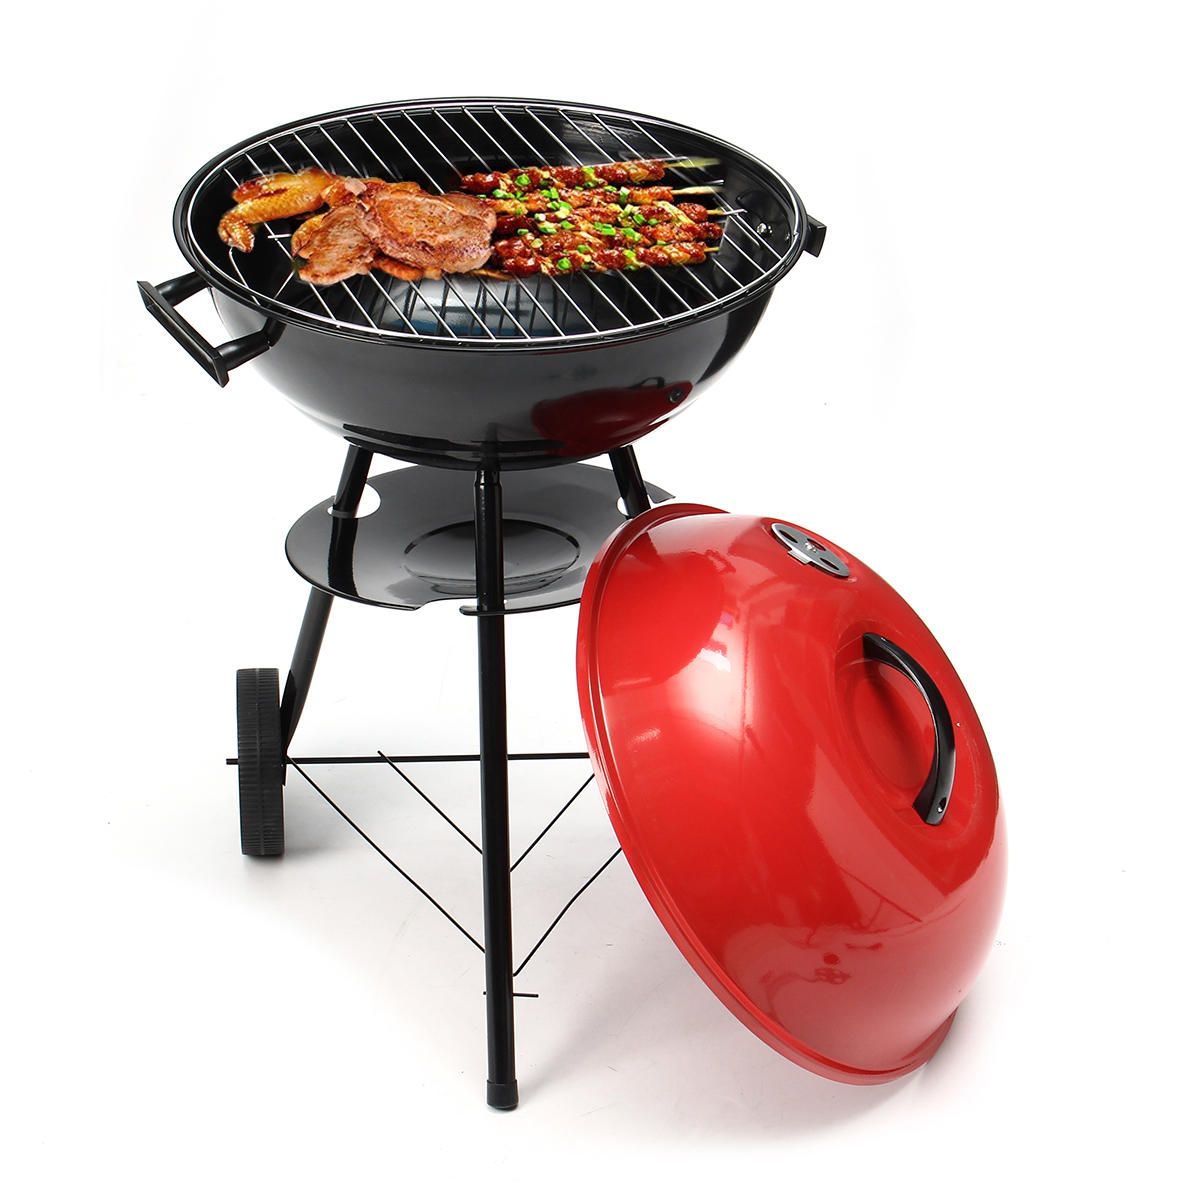 Portable Red Kettle Trolley BBQ Grill Charcoal Barbecue Wood Barbeque  Picnic BBQ Grill: Buy Online at Best Prices in Pakistan | Daraz.pk